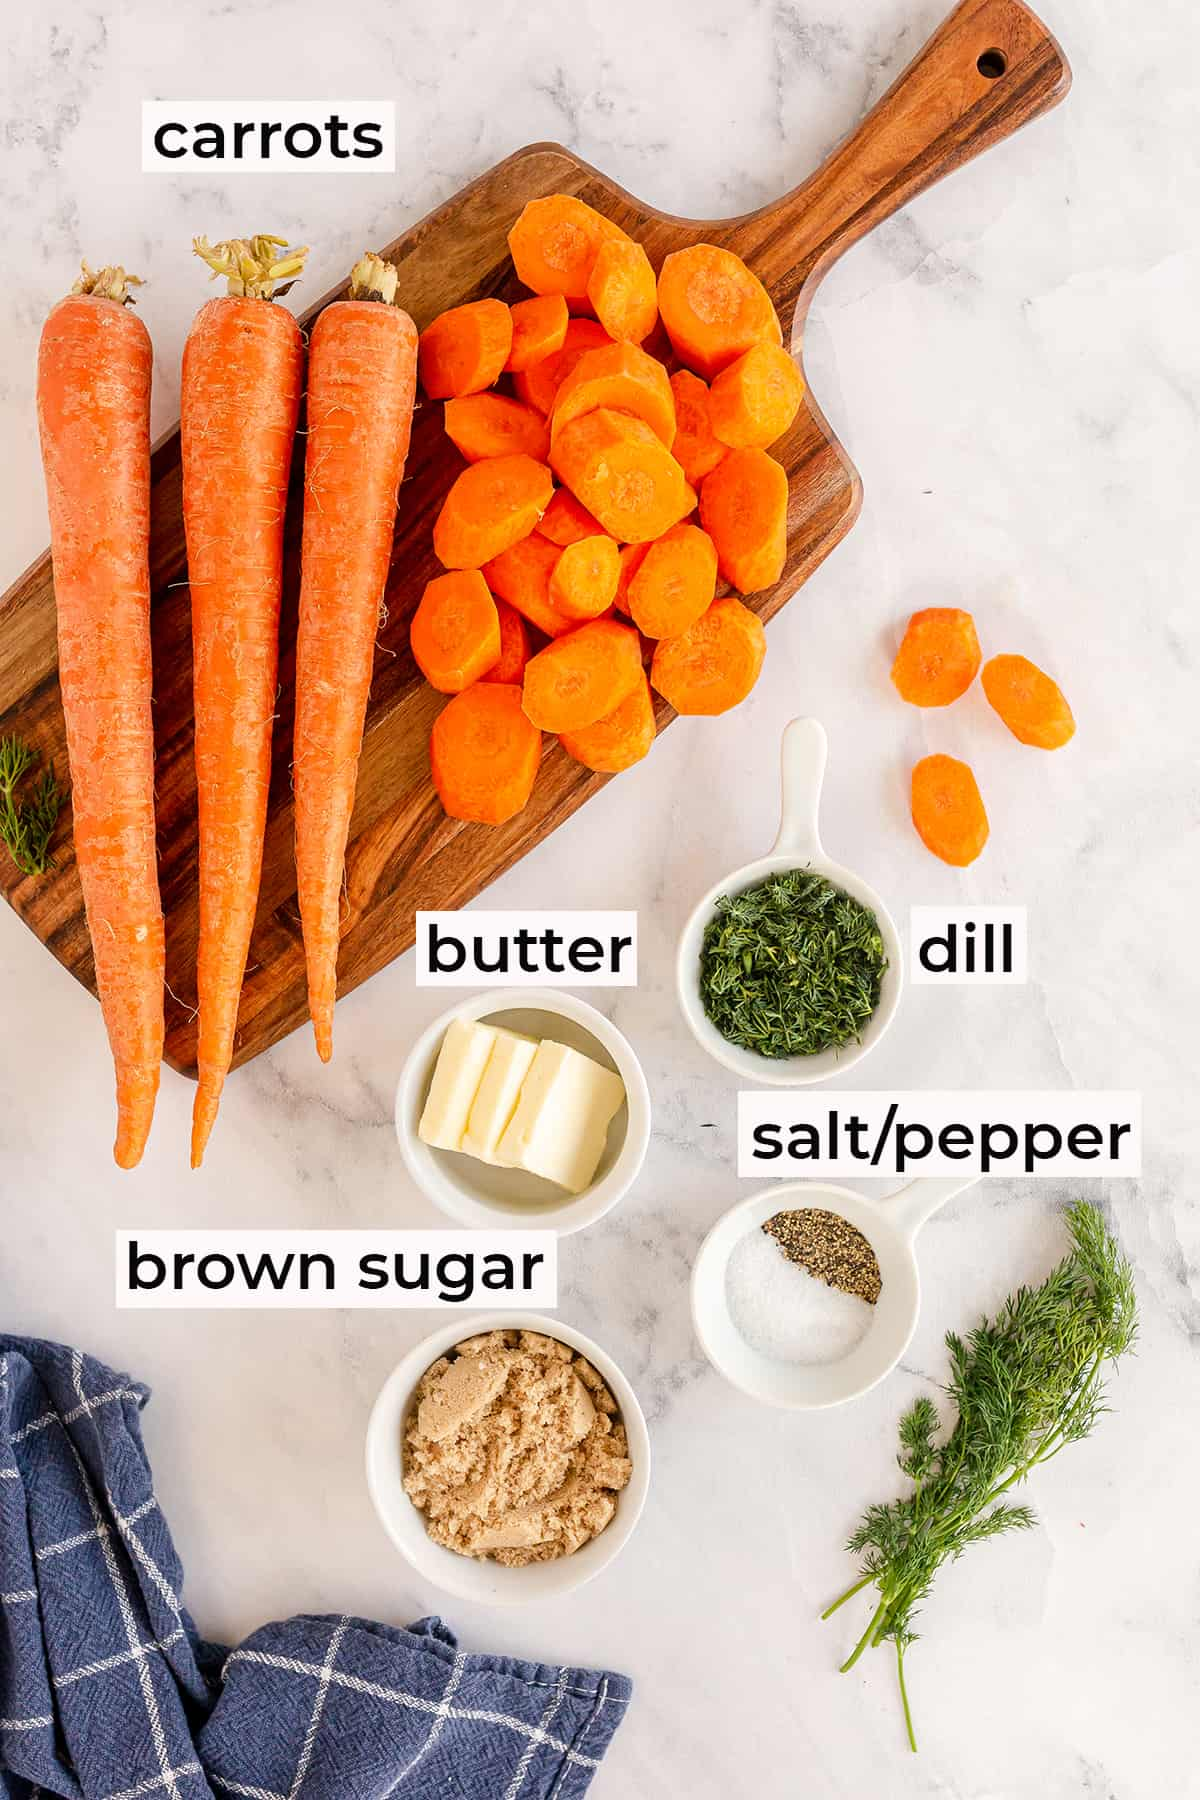 Ingredients to make Brown Sugar Dill Carrots with text overlay.